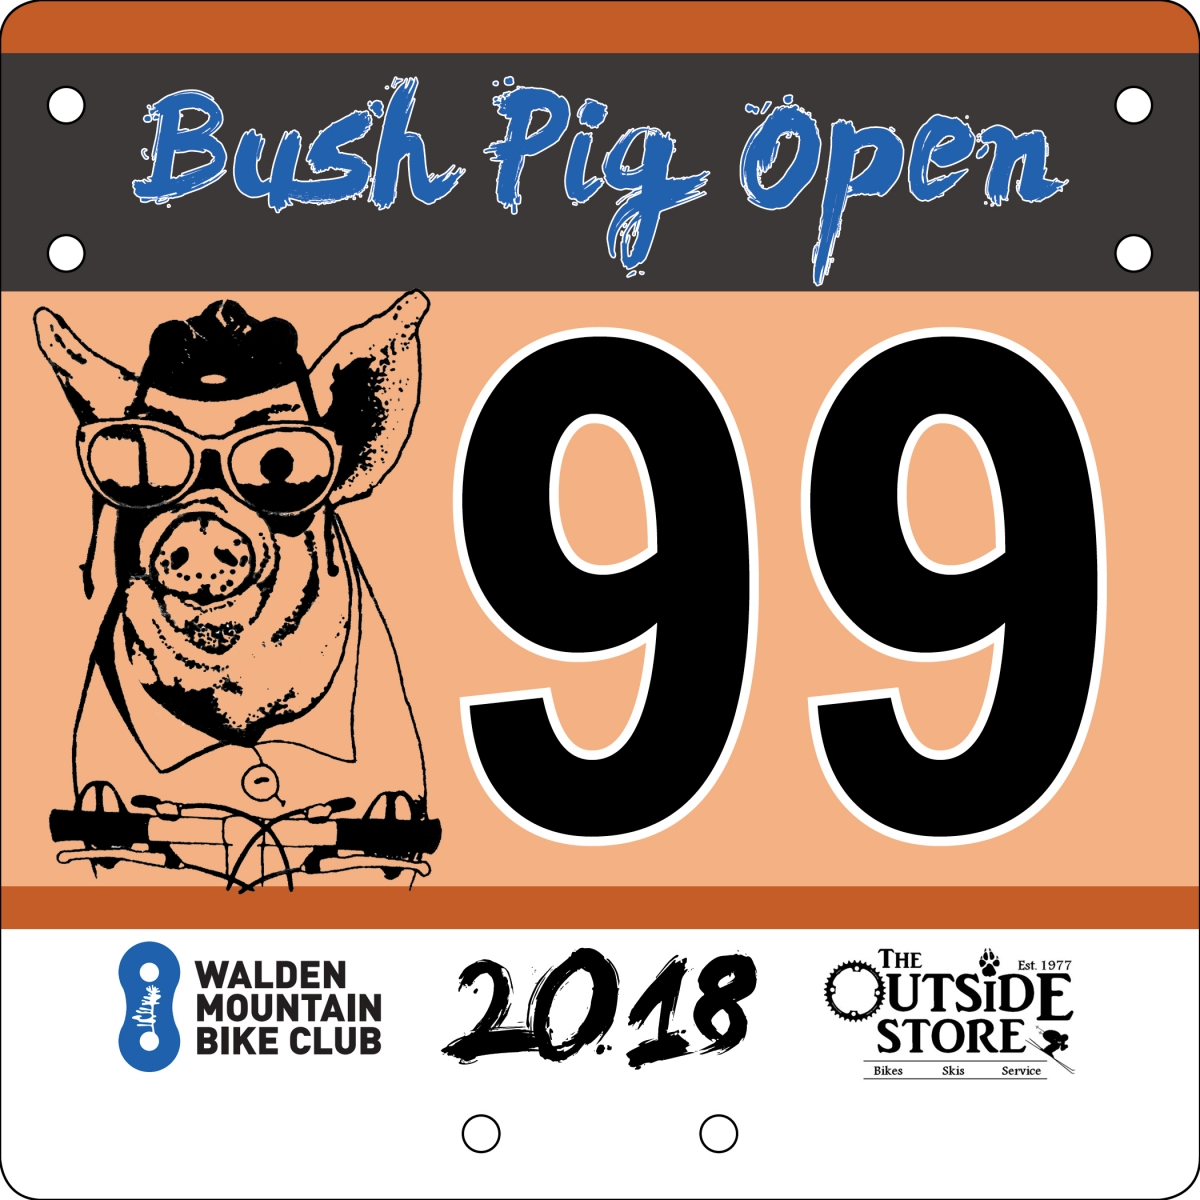 Bush Pig Open Evening Race - August